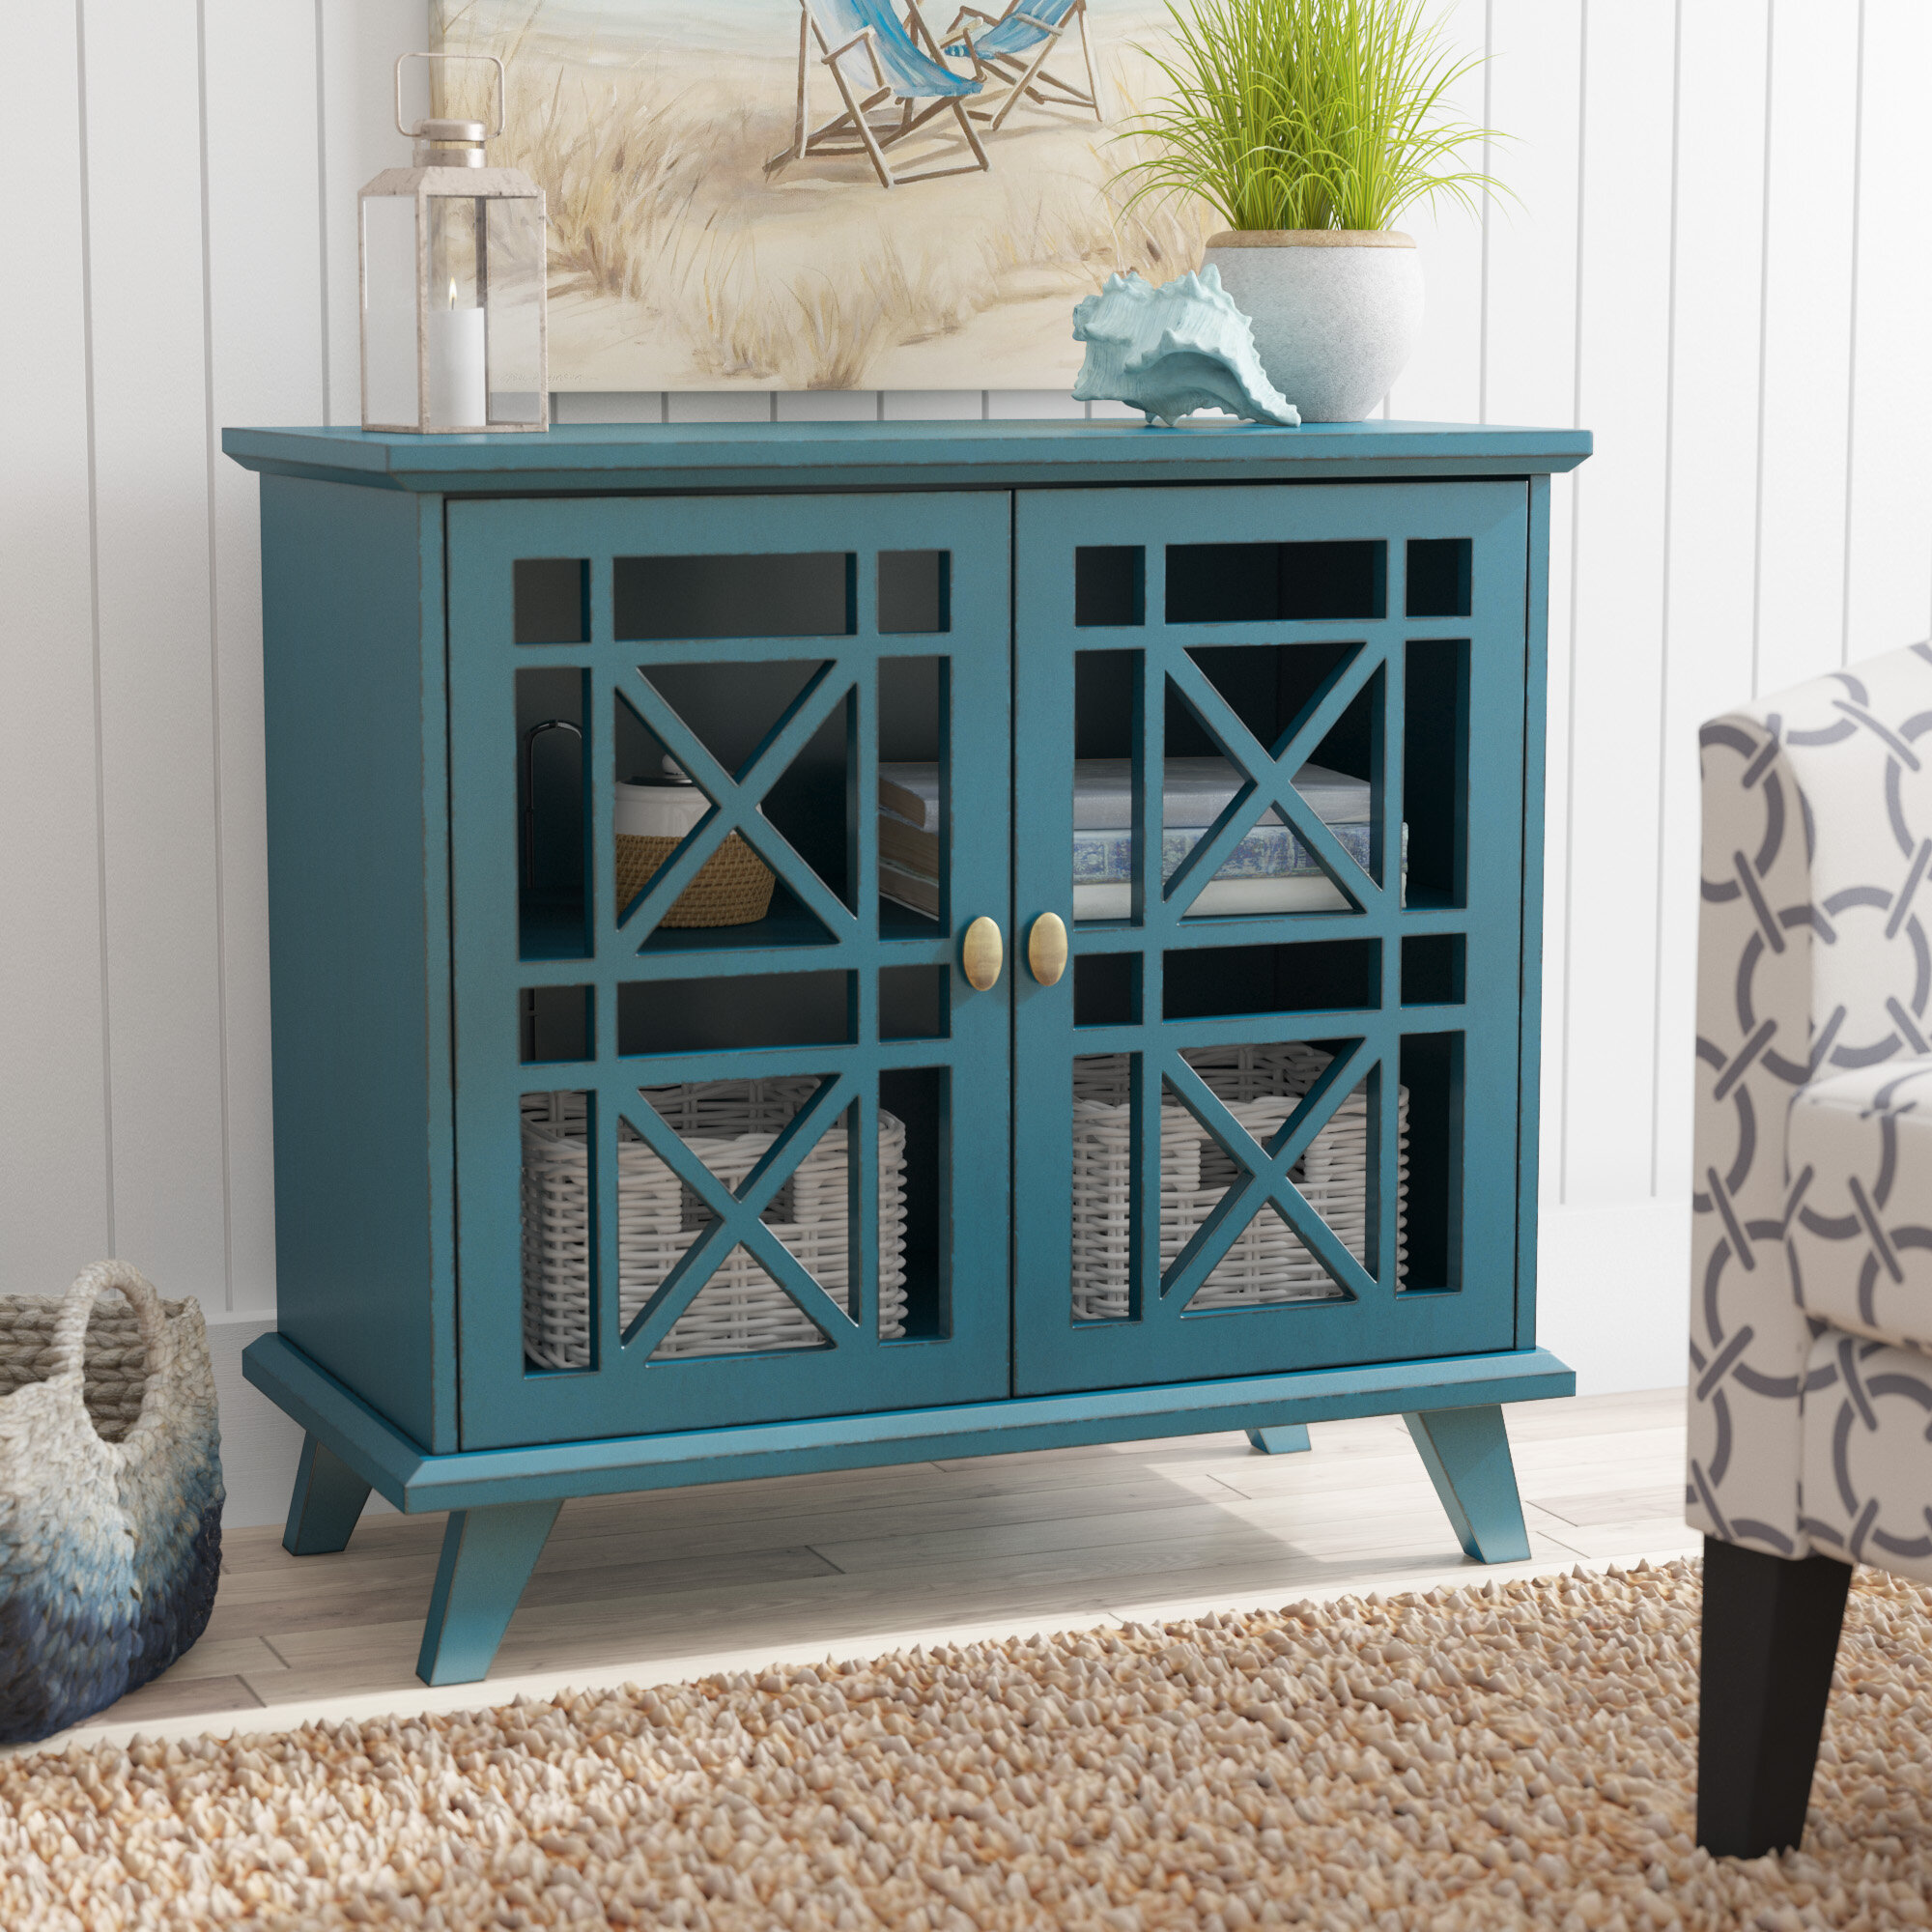 Beachcrest Home Matheus Fretwork 2 Door Accent Cabinet Reviews Wayfair Co Uk